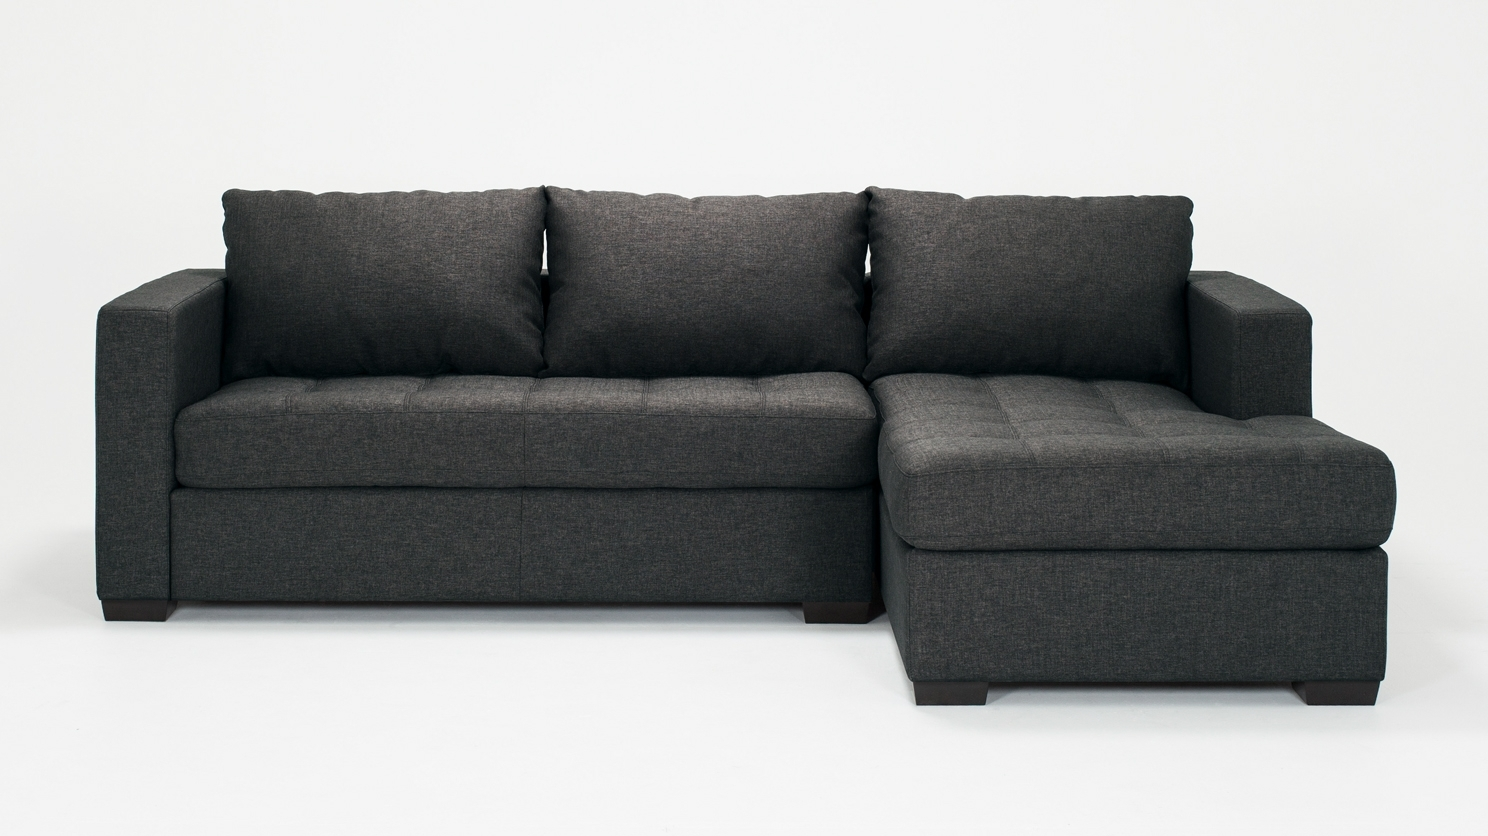 Porter 2 Piece Sectional Sofa With Chaise – Fabric (View 14 of 20)